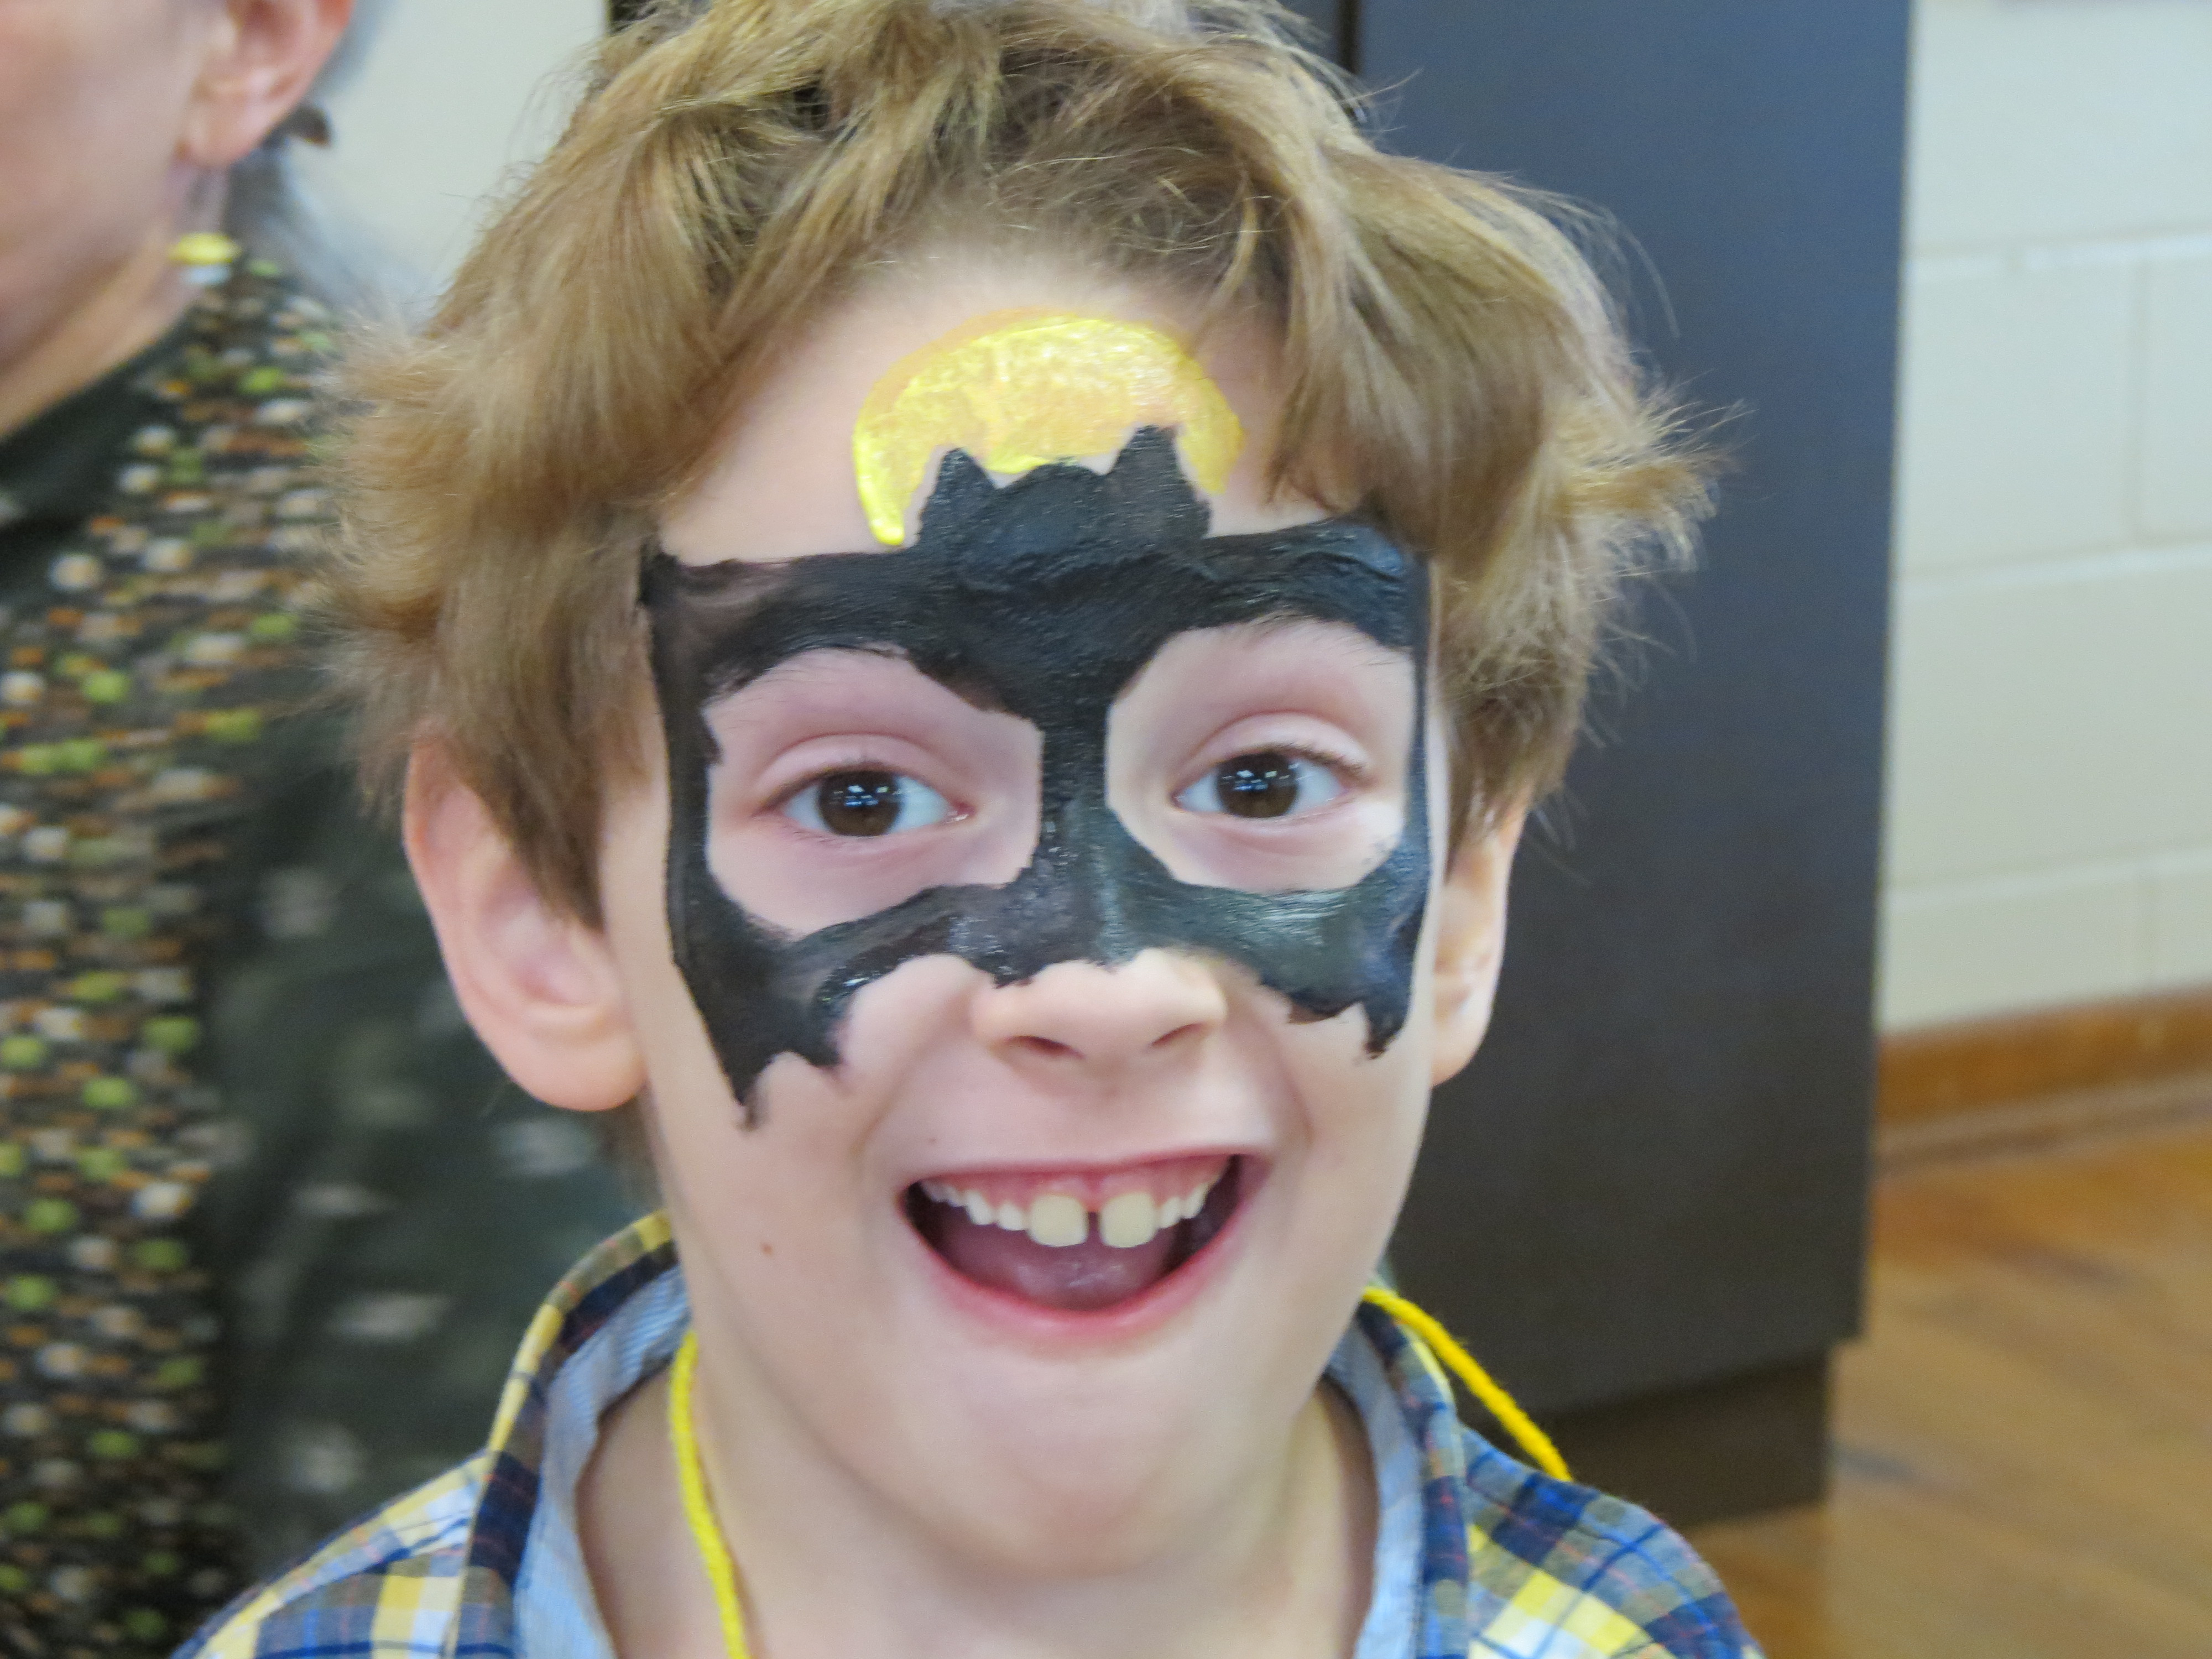 A photo of a young visitor with his face painted as a bat